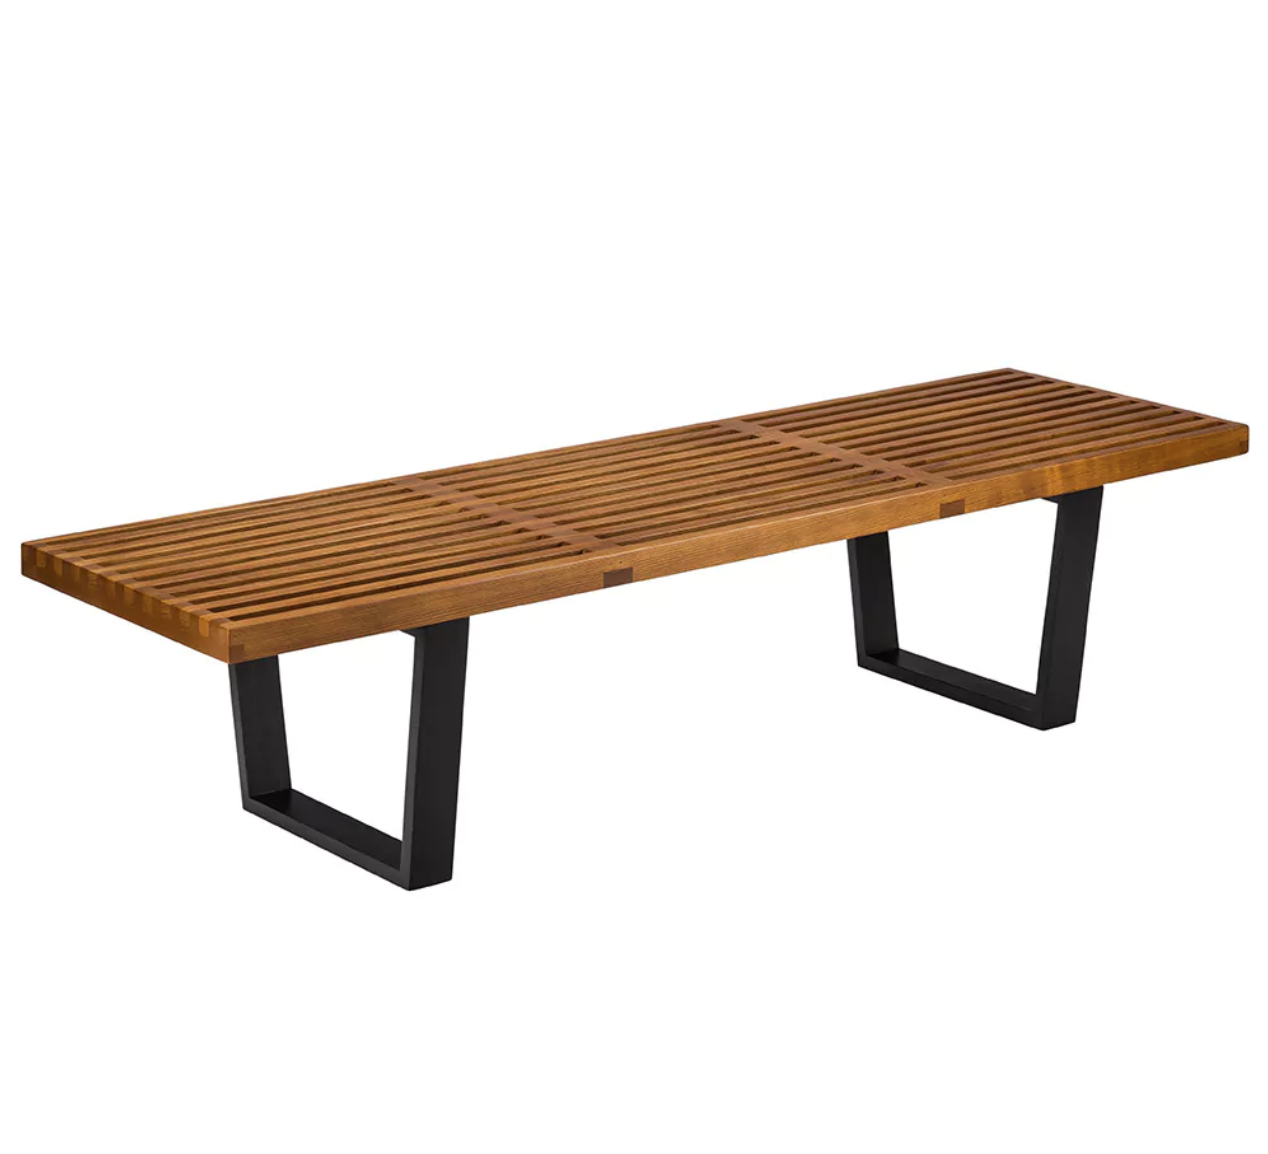 This one from Overstock is the closest look-alike to what we have!